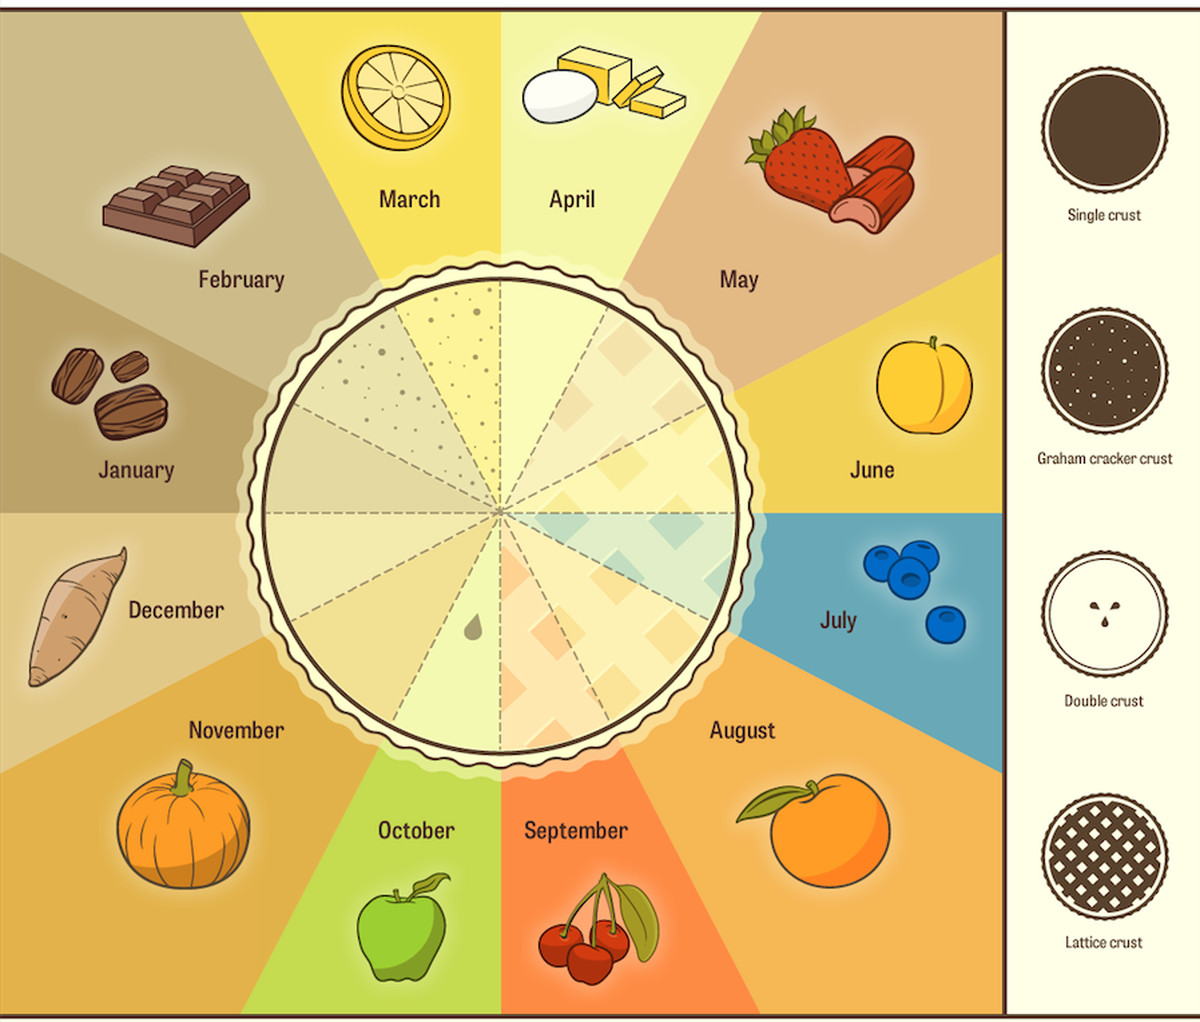 11 amazing pie charts in honor of pi day vox and then there is the more informative pie chart about pie so helpful nvjuhfo Gallery